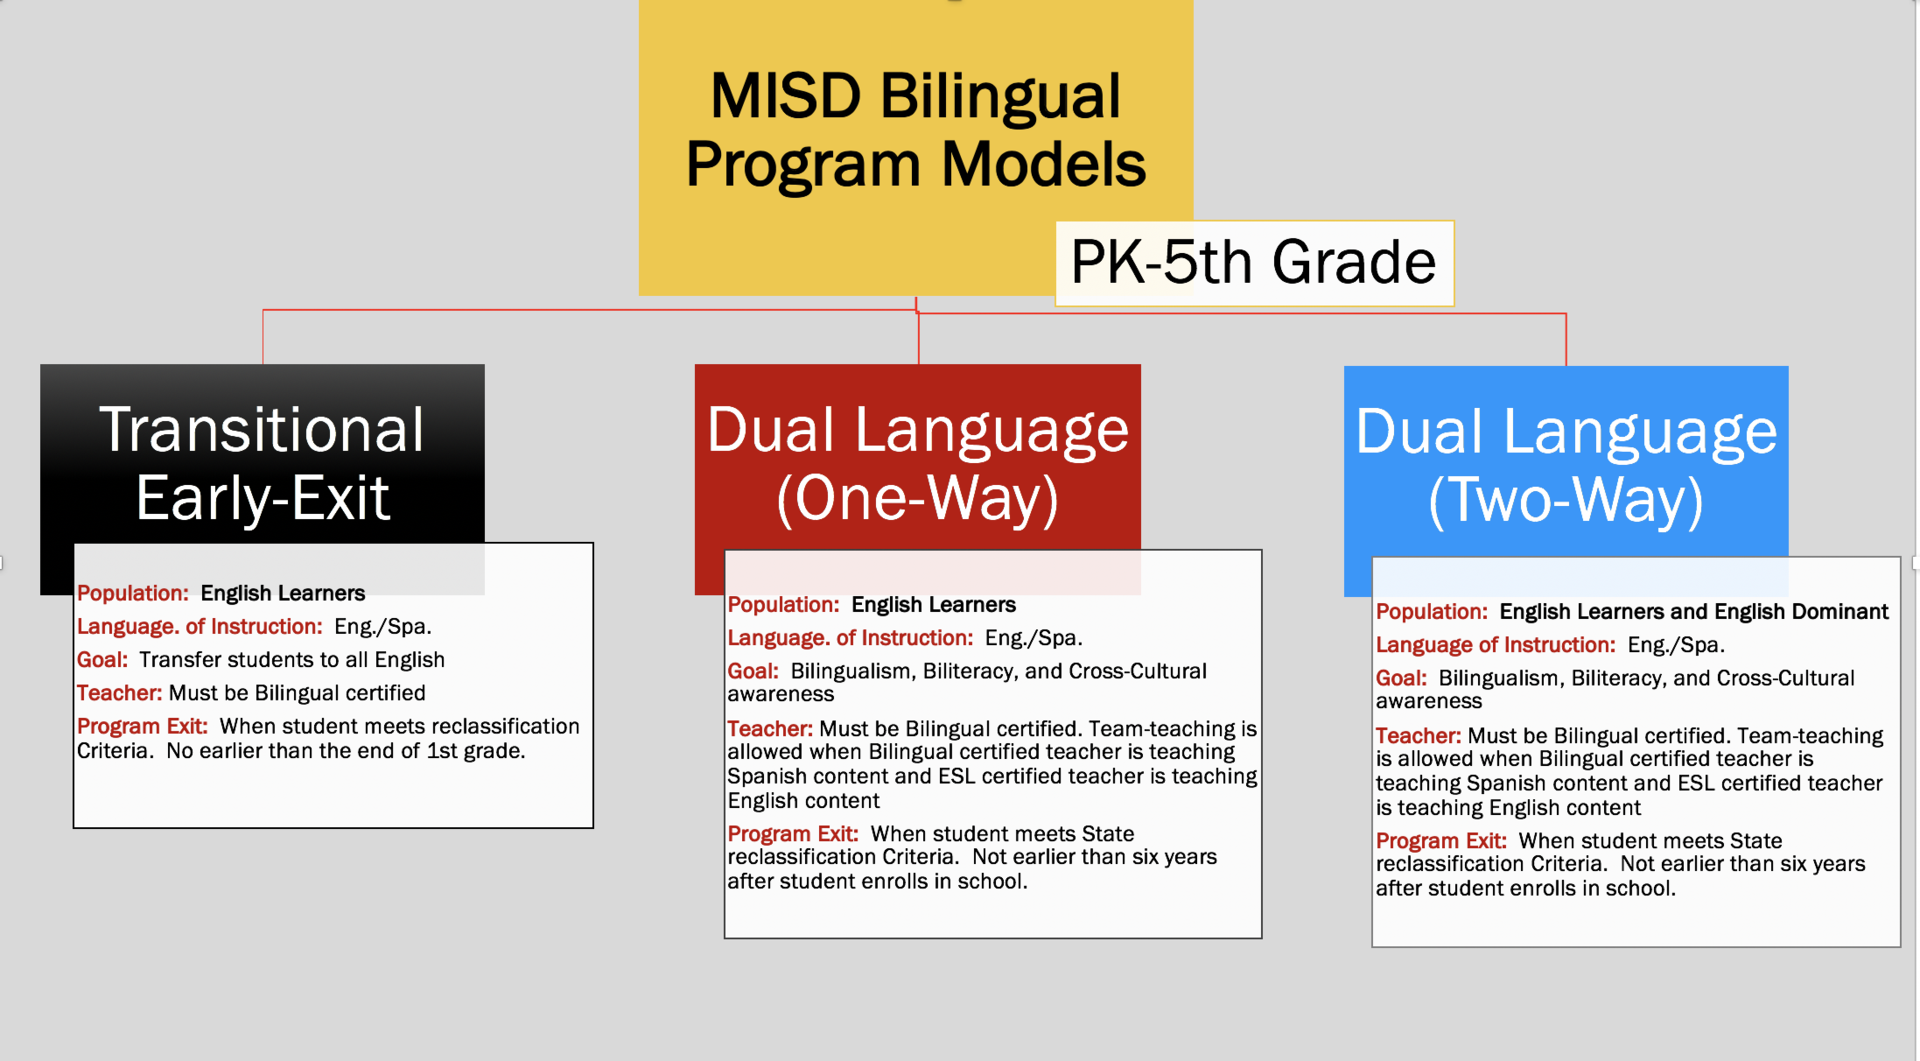 Bilingual Programs Models. Transitional Early-Exit with population for English Learners. Language of instruction is English and Spanish. The goal is to transfer students to all English. Teacher must be Bilingual certified. Program exit is when student meets reclassification criteria and no earlier than at the end of 1st grade. Dual Language One Way. Population is English Learners. Language of instructions is English and Spanish. Goal is bilingualism, biliteracy, and cros-cultural awareness.  Teachers must be bilingual certified. Team teaching is allowed when Bilingual certified teacher teaches the Spanish content and ESL certified teacher teachers the English content.  Program exit is when English learner meets the state's reclassification criteria and not earlier than 6 years.